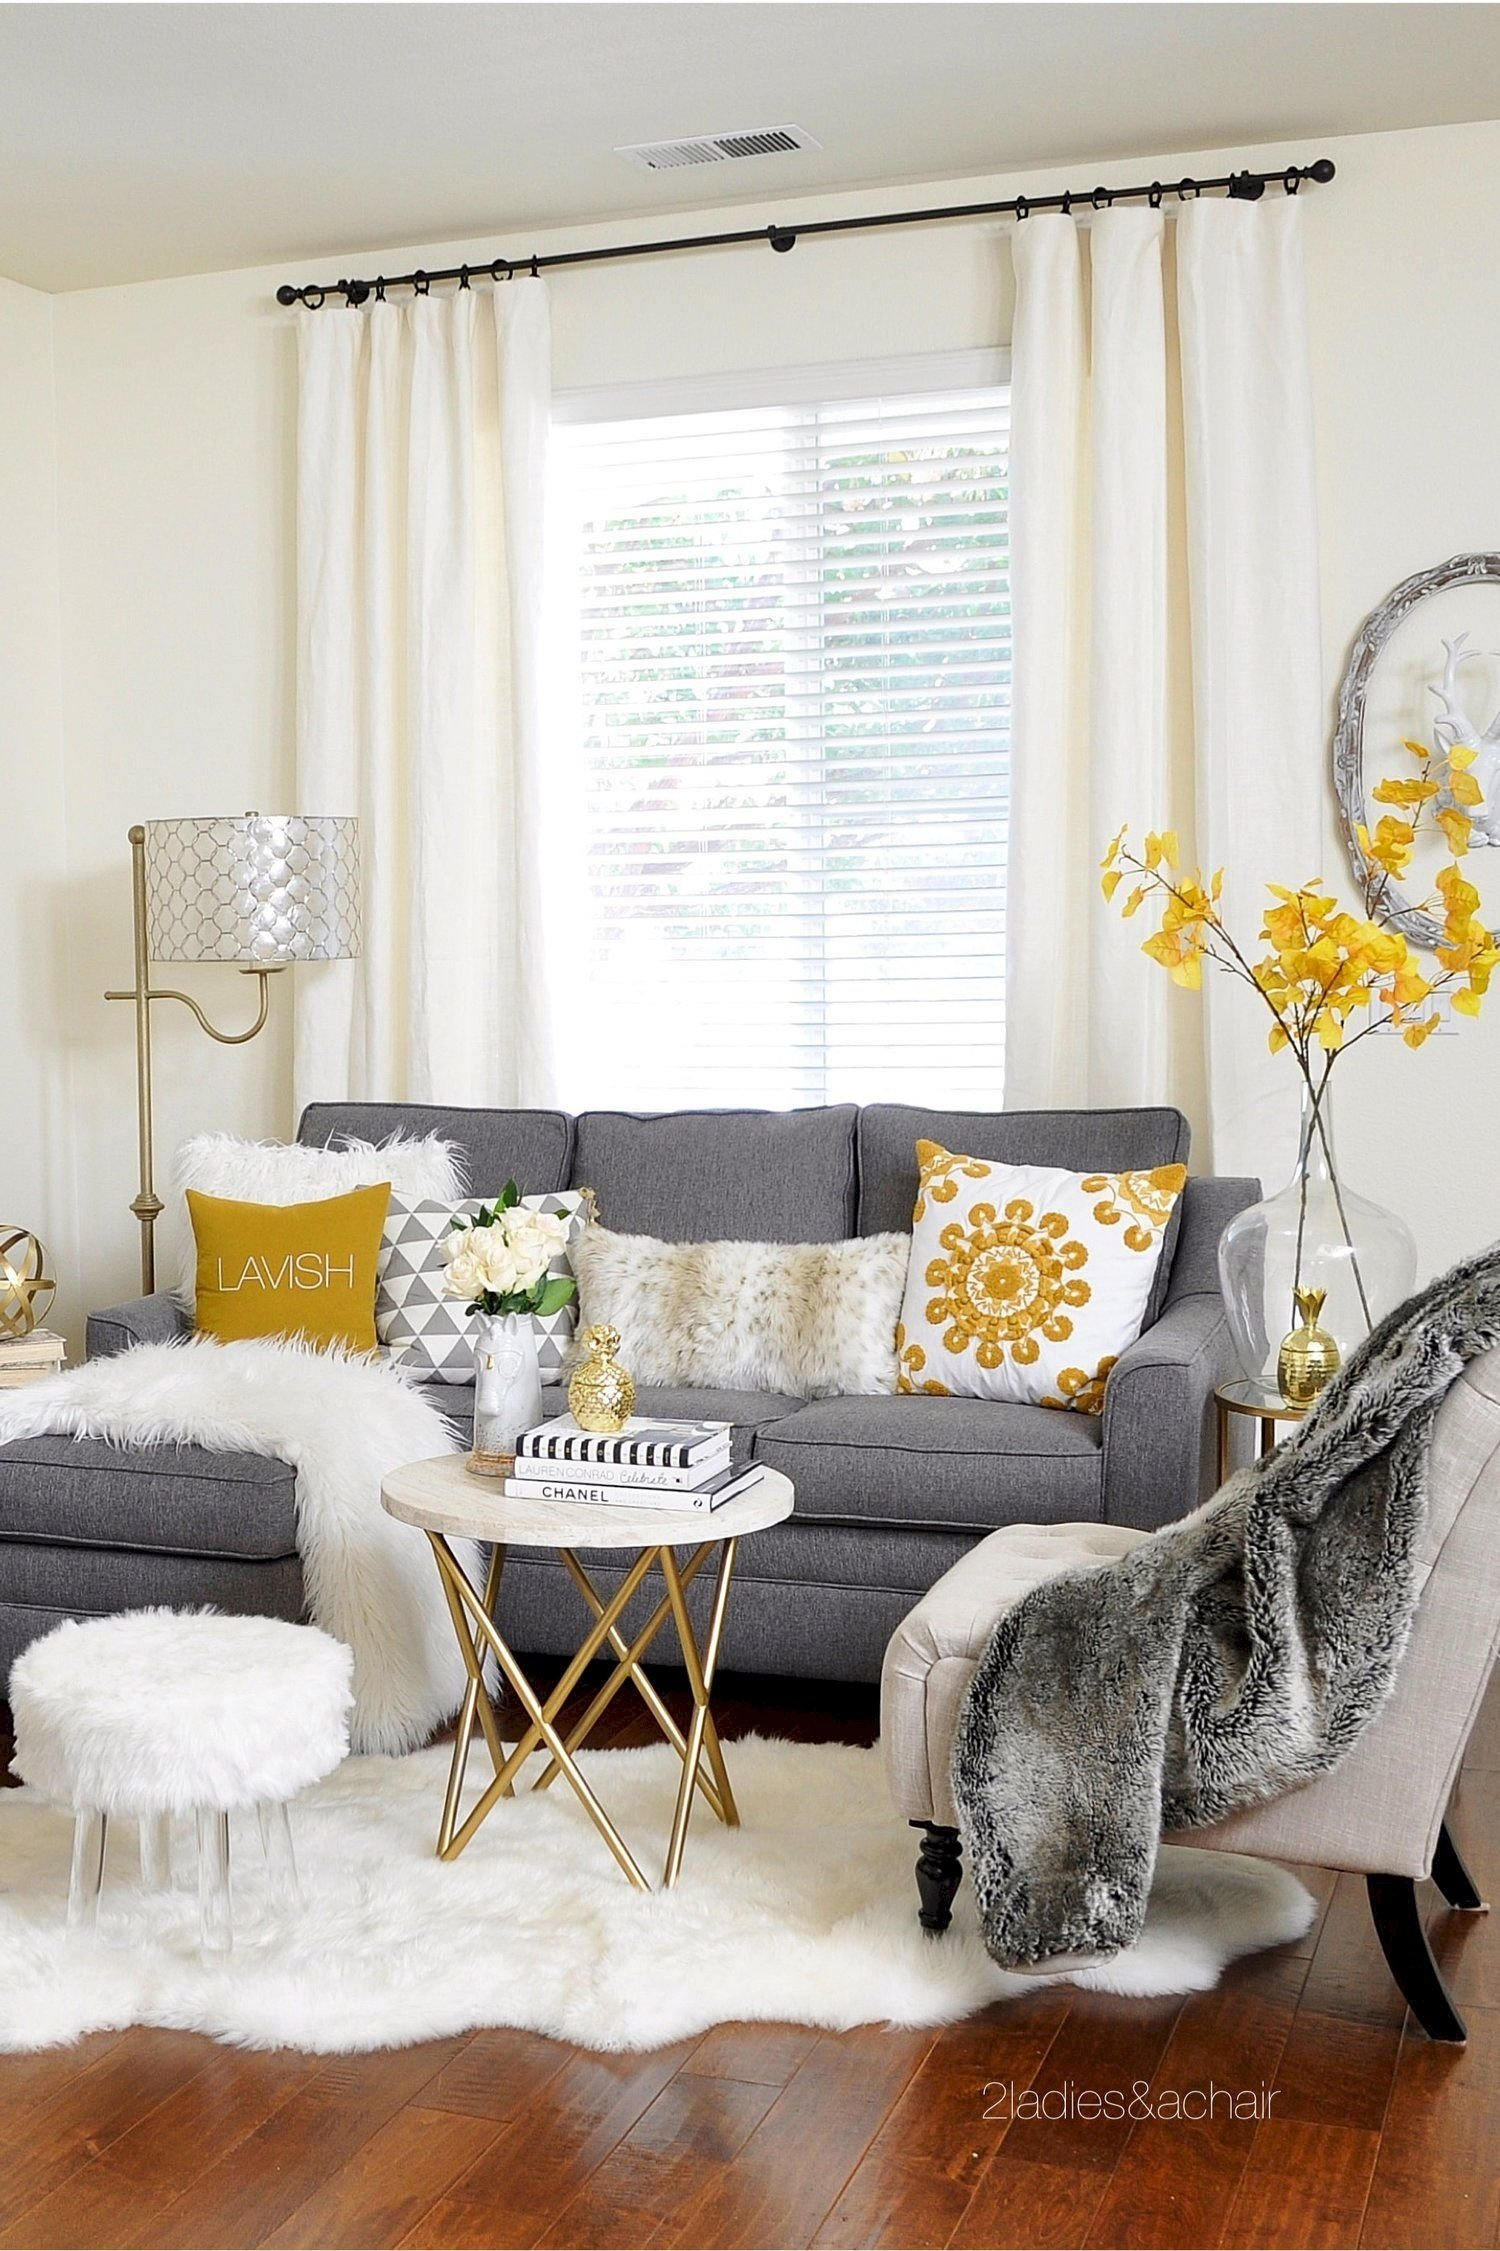 10 Ideal Small Living Room Decorating Ideas On A Budget 173 best diy small living room ideas on a budget https freshoom 2020